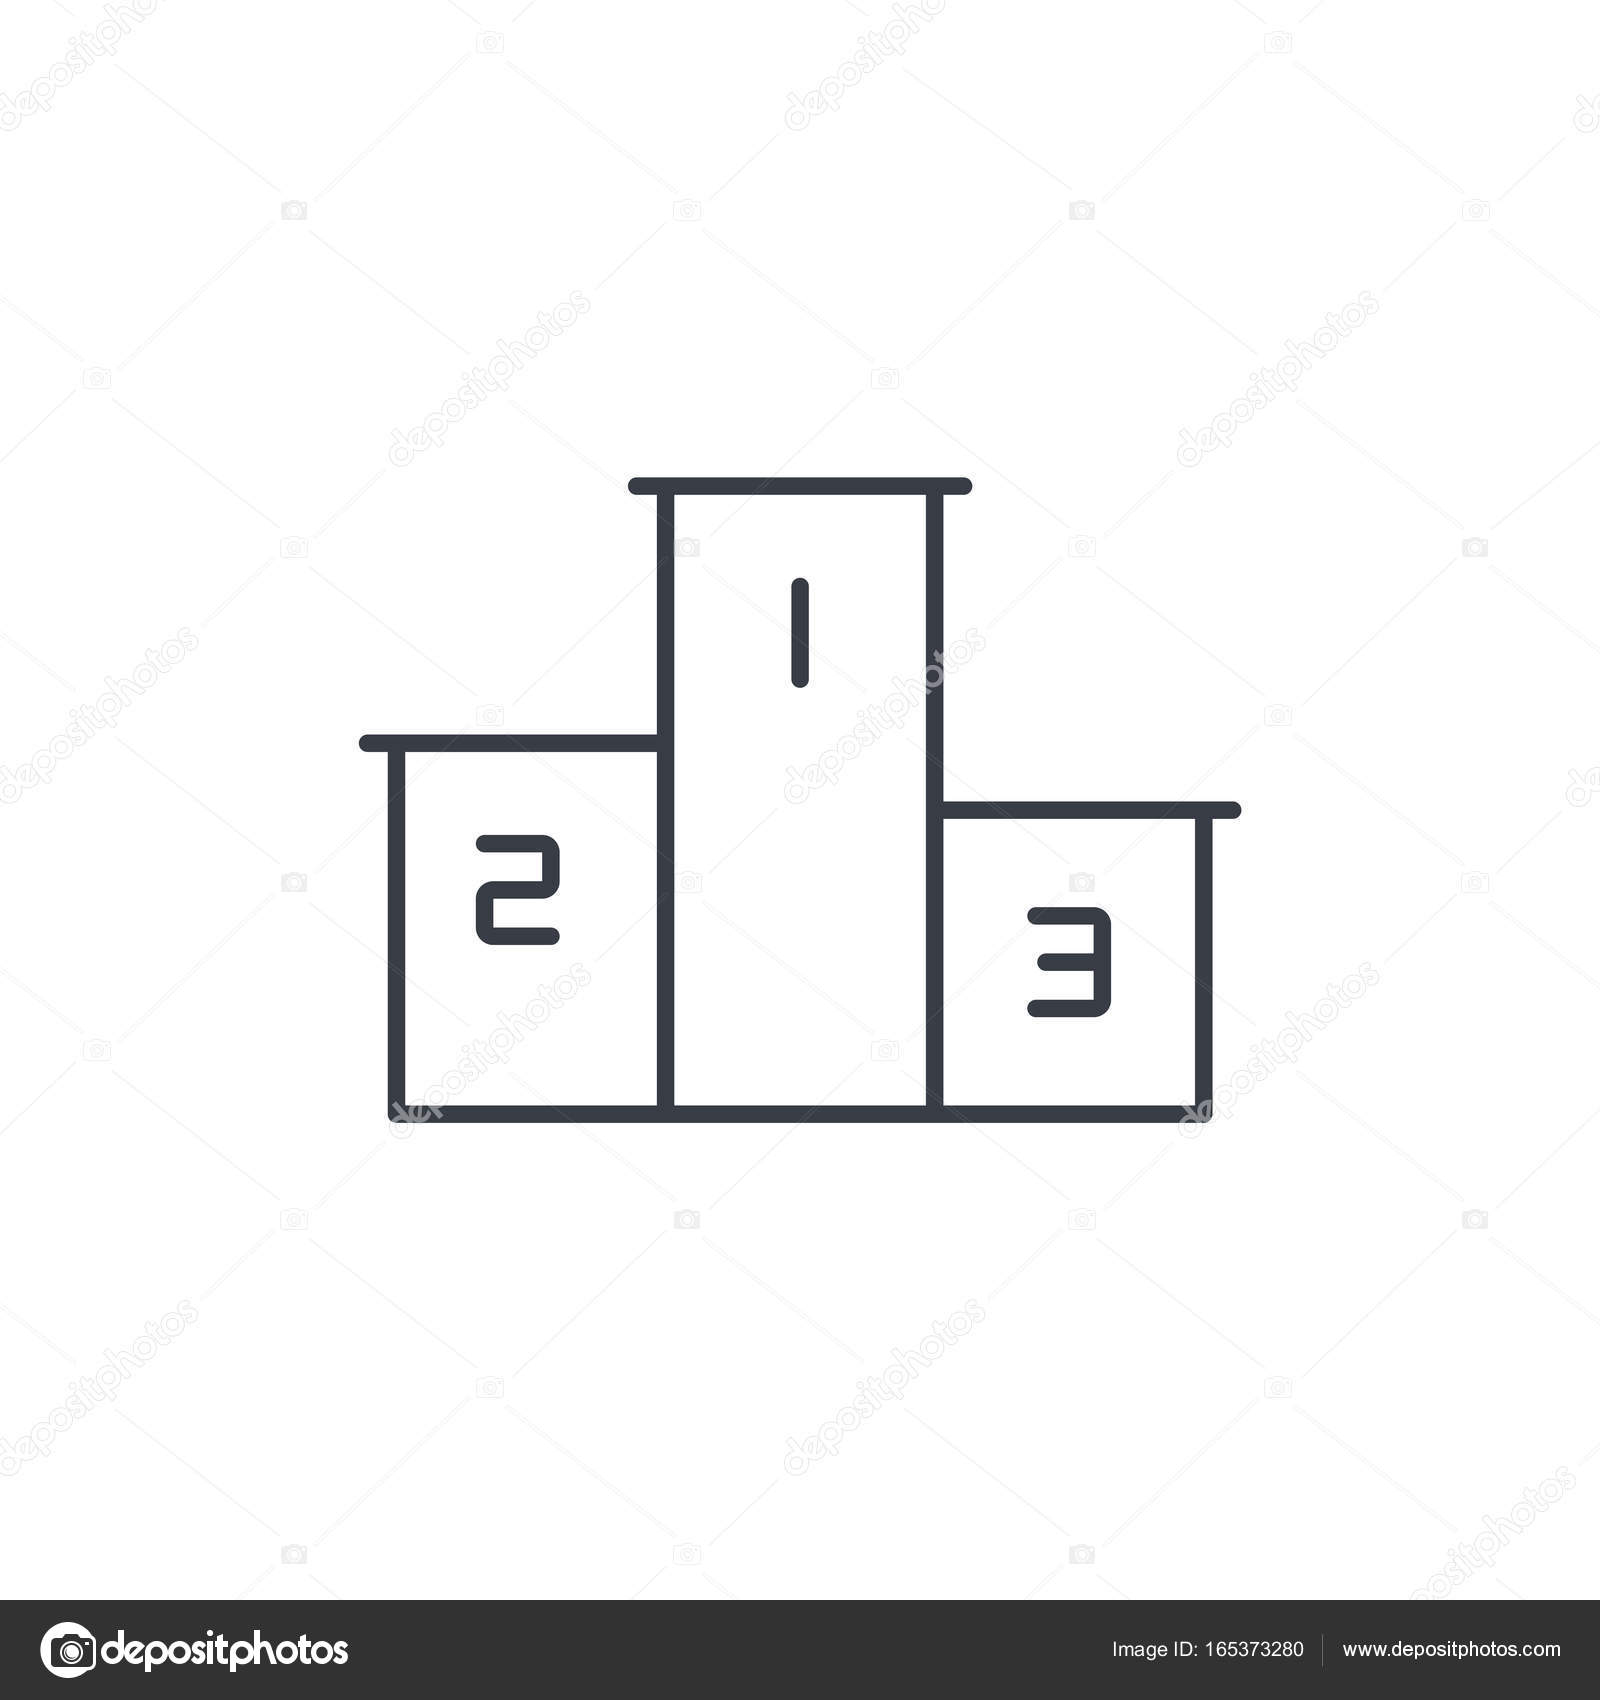 Empty winners podium first second third place award ceremony empty winners podium first second third place award ceremony thin line icon linear vector illustration pictogram isolated on white background vector buycottarizona Gallery